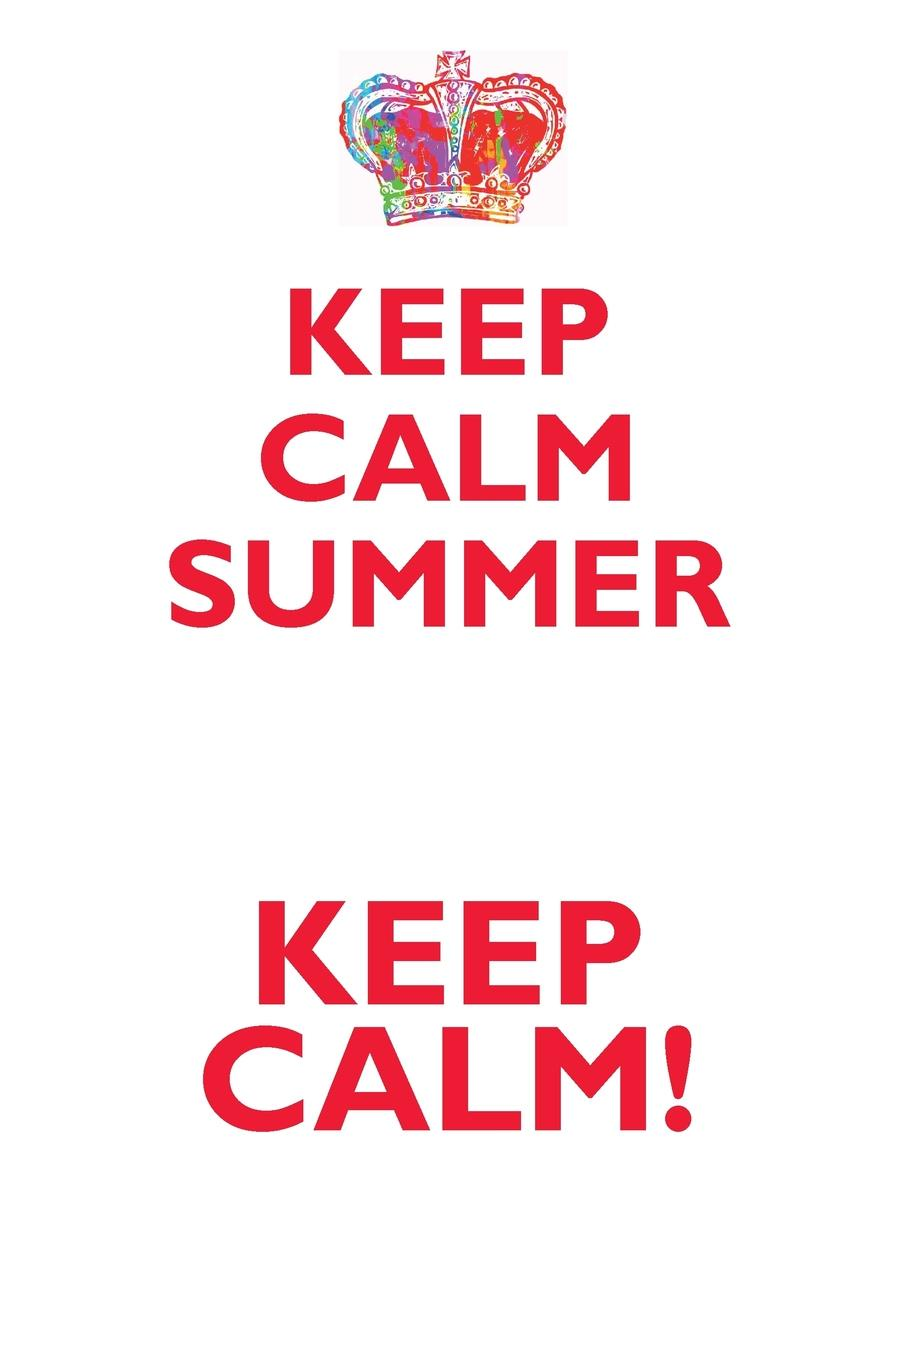 KEEP CALM SUMMER! AFFIRMATIONS WORKBOOK Positive Affirmations Workbook Includes. Mentoring Questions, Guidance, Supporting You